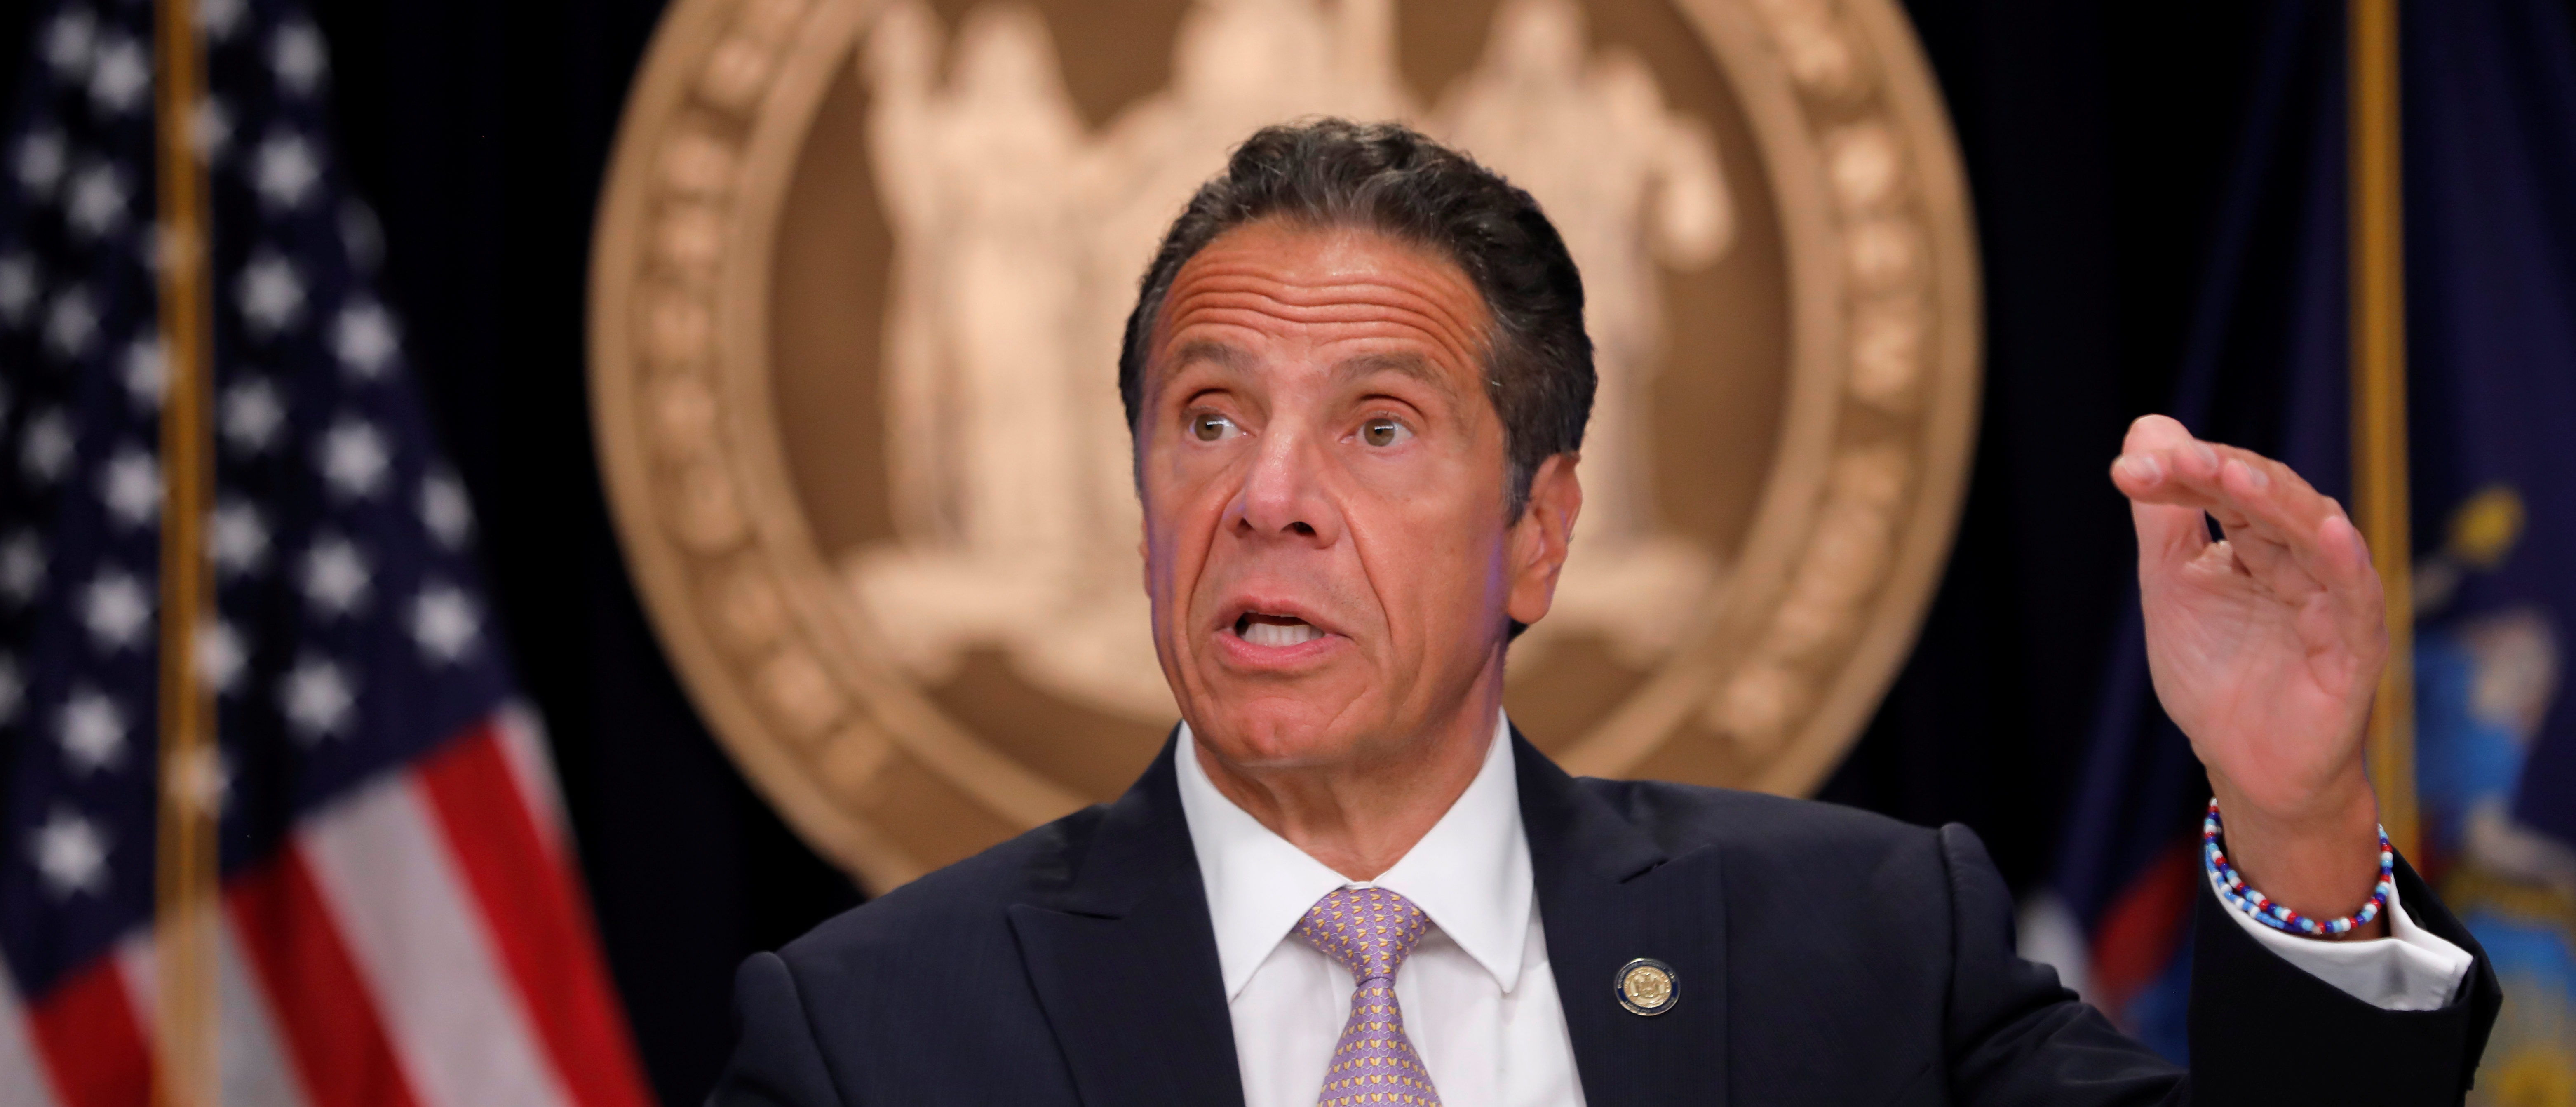 New York Governor Andrew Cuomo speaks during a daily briefing following the outbreak of the coronavirus disease (COVID-19) in Manhattan in New York City, New York, U.S., July 13, 2020. REUTERS/Mike Segar